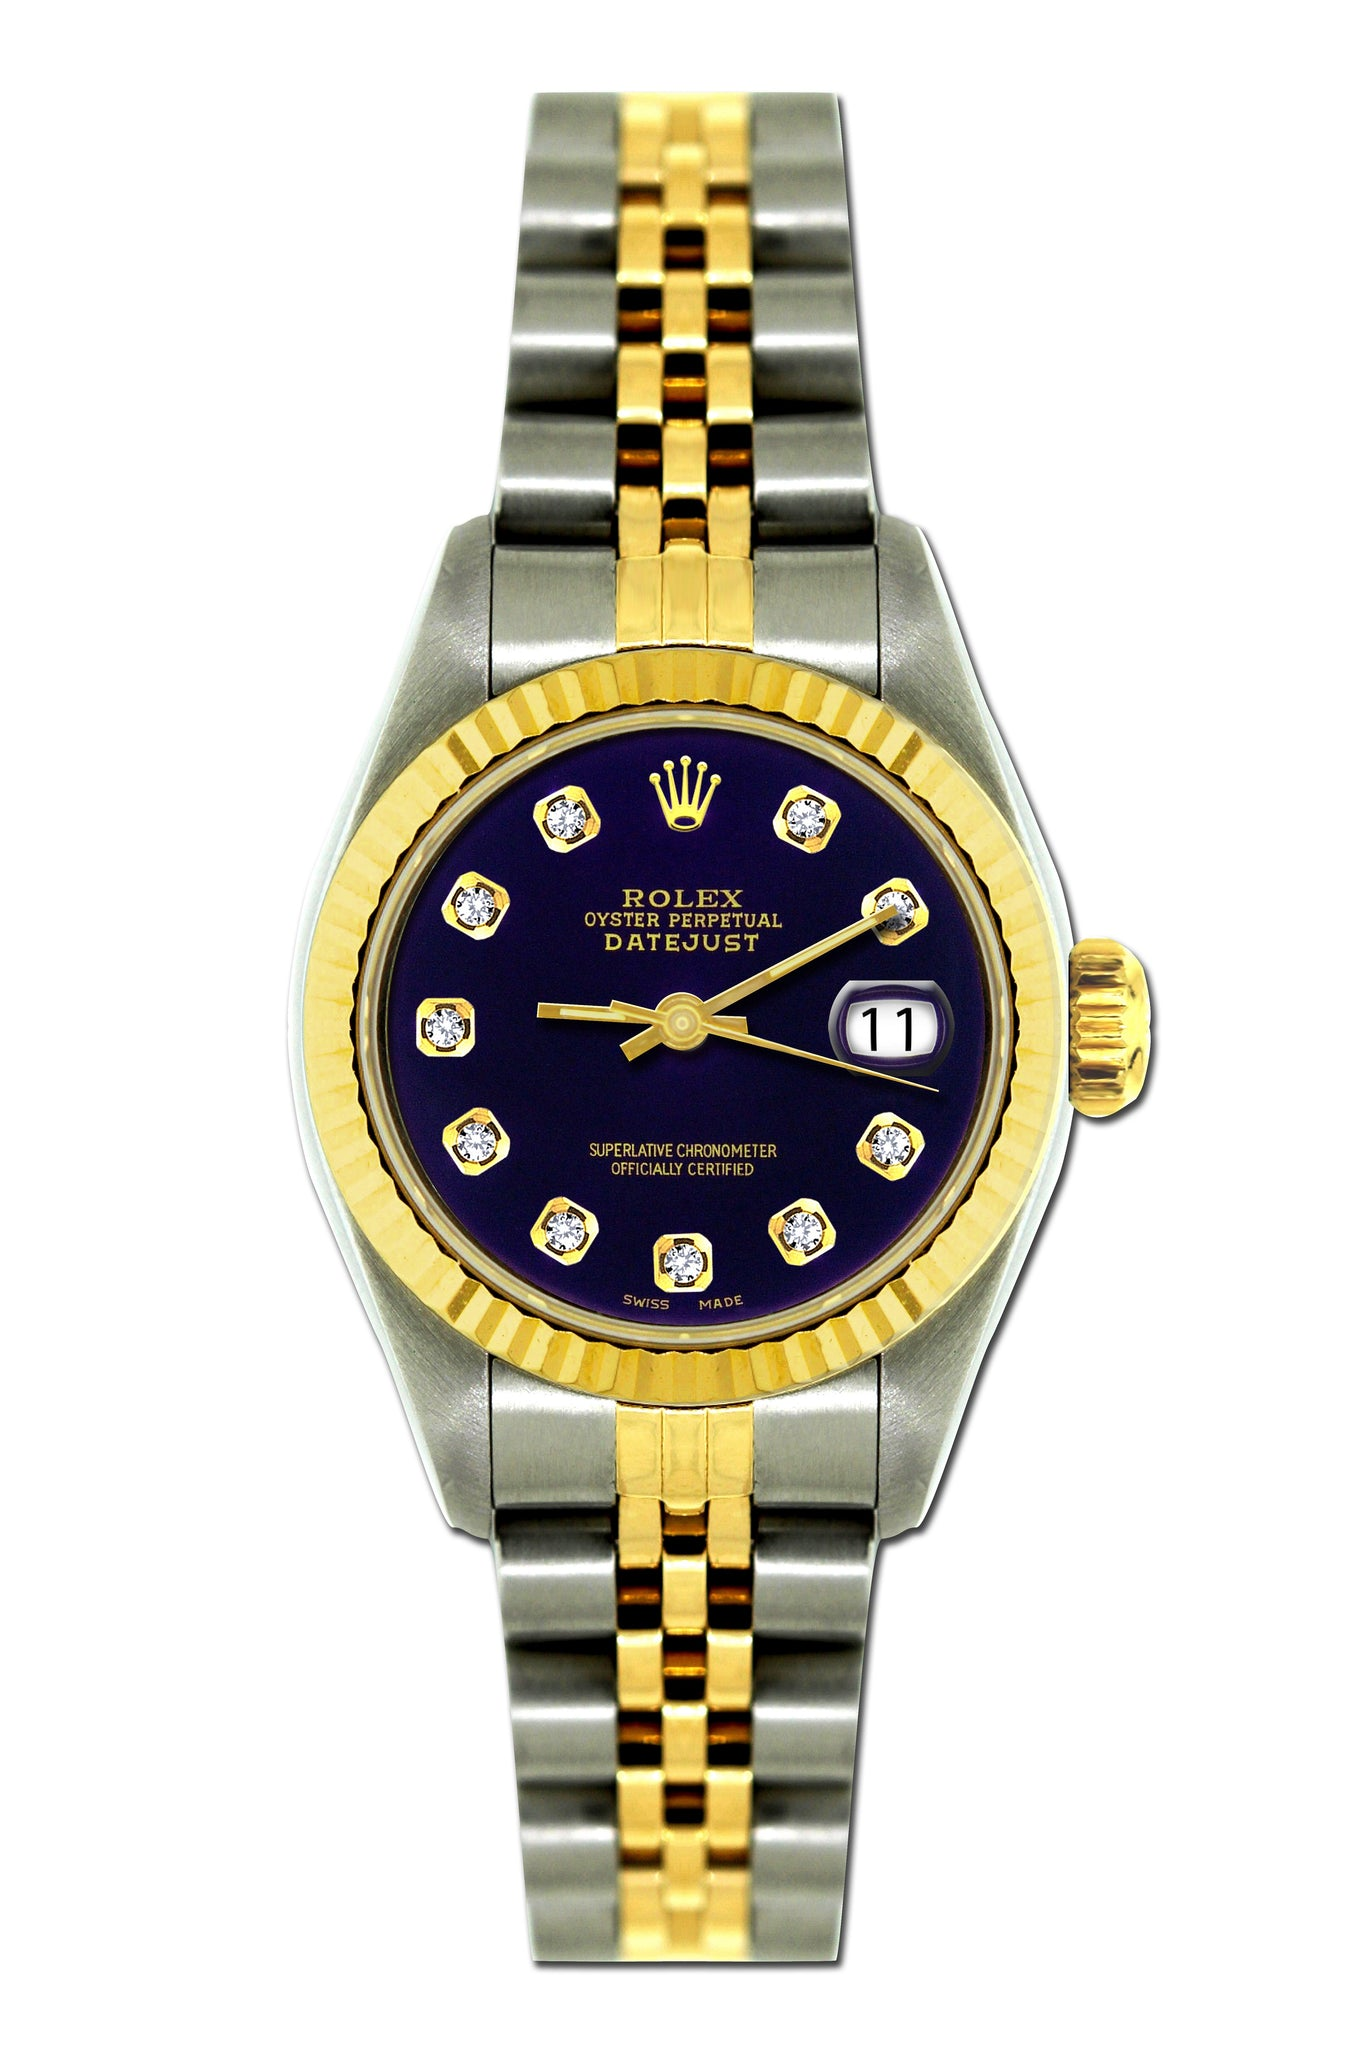 Rolex Datejust 26mm Yellow Gold and Stainless Steel Bracelet Black Russian Dial